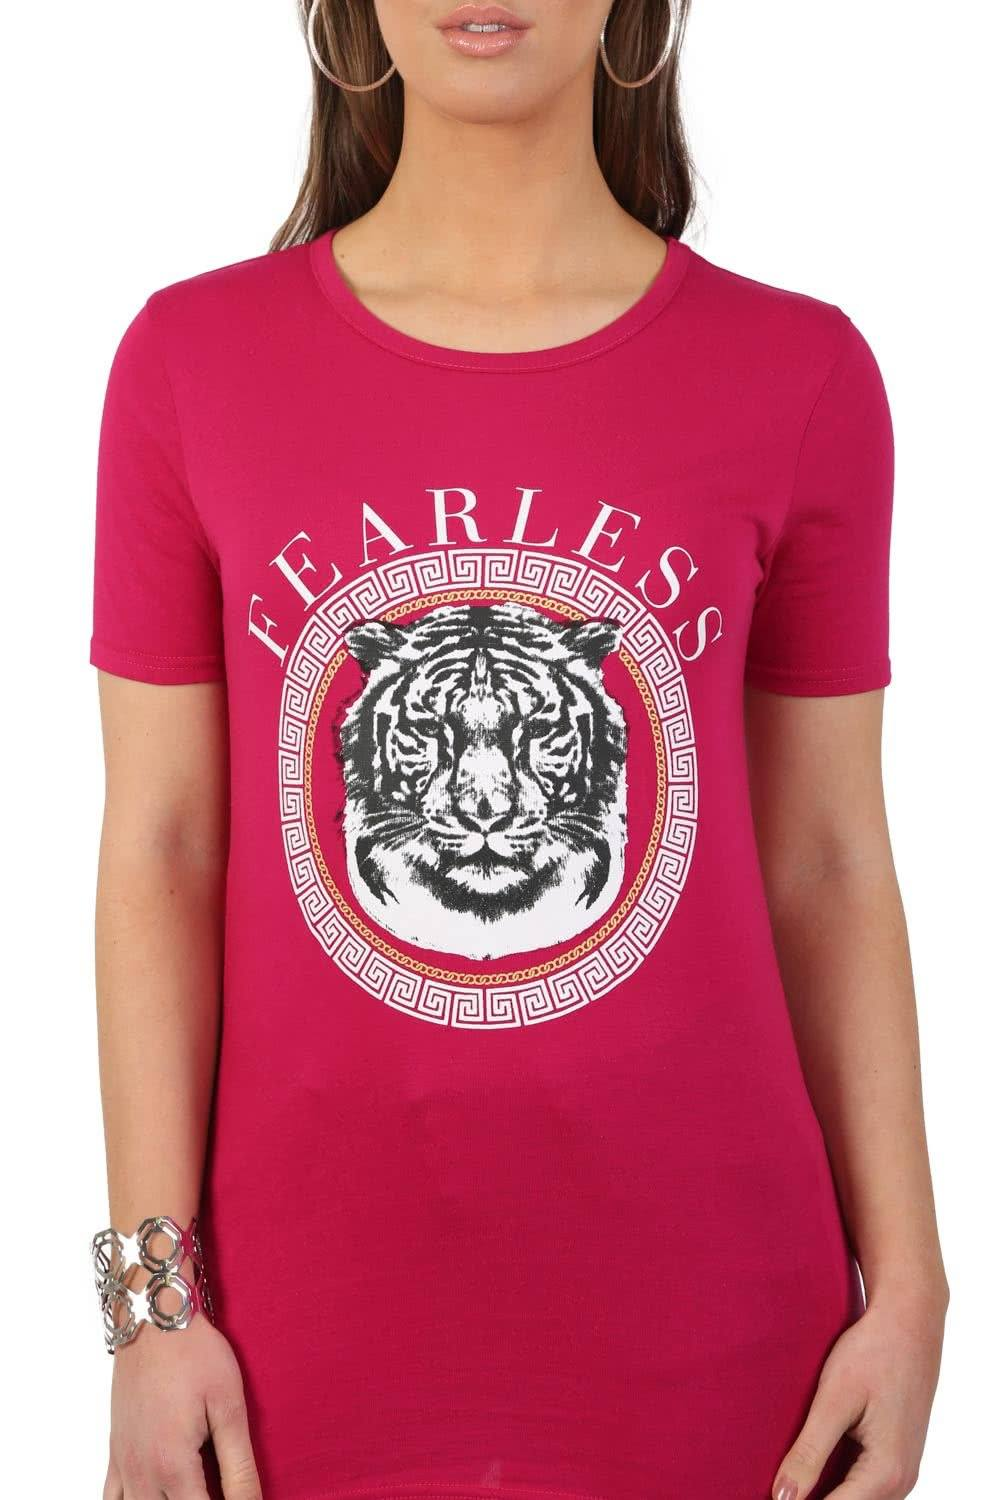 Fearless Slogan Print Tiger Motif Short Sleeve T-Shirt in Magenta Pink 5